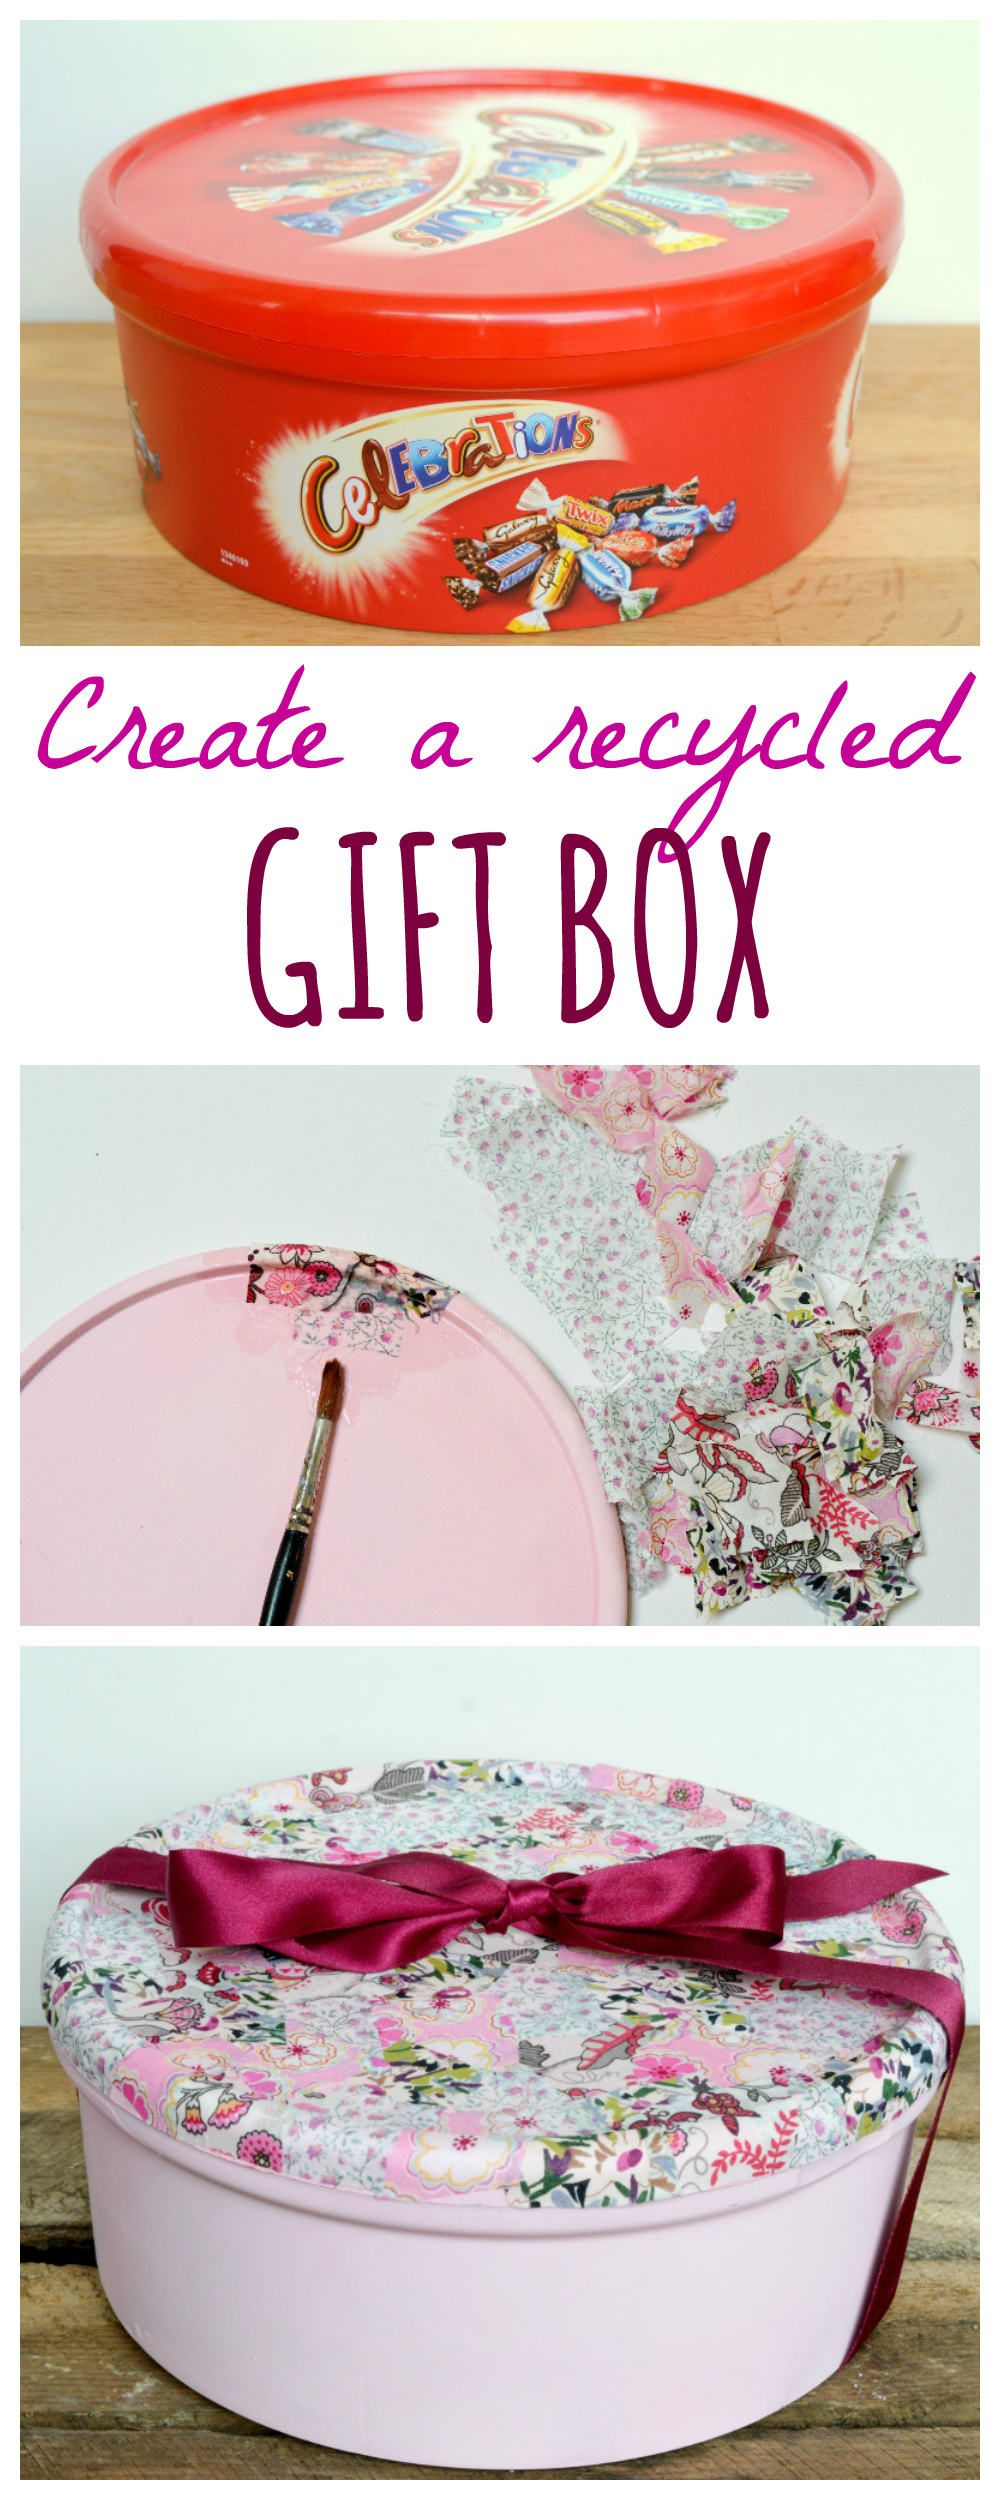 Diy recycled christmas gift ideas